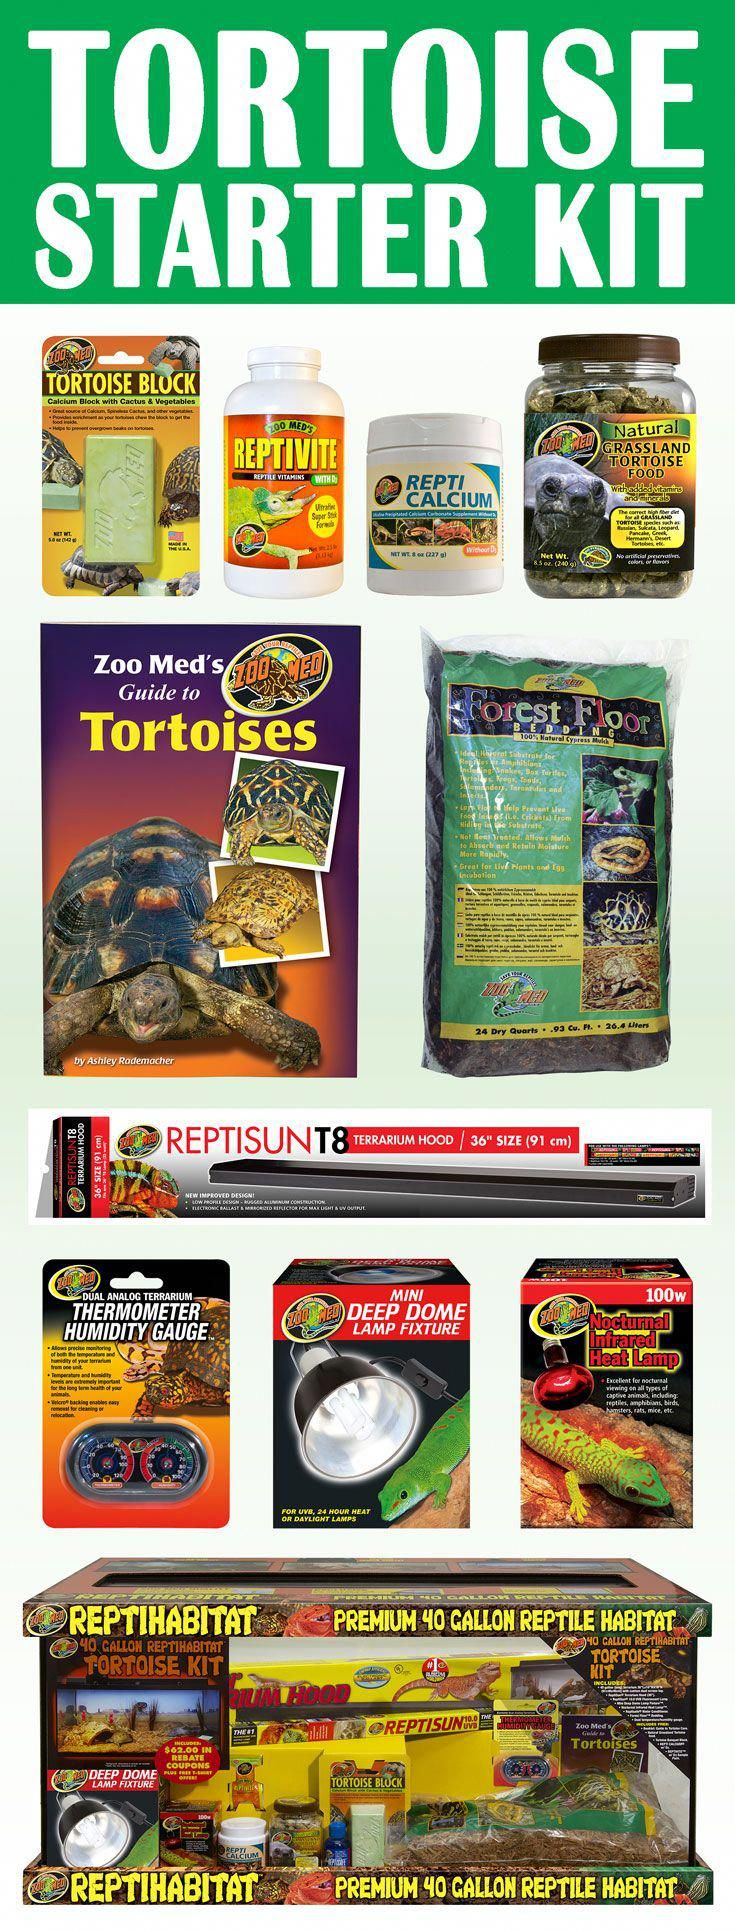 Tortoise starter kit everything you need to set up a tortoise